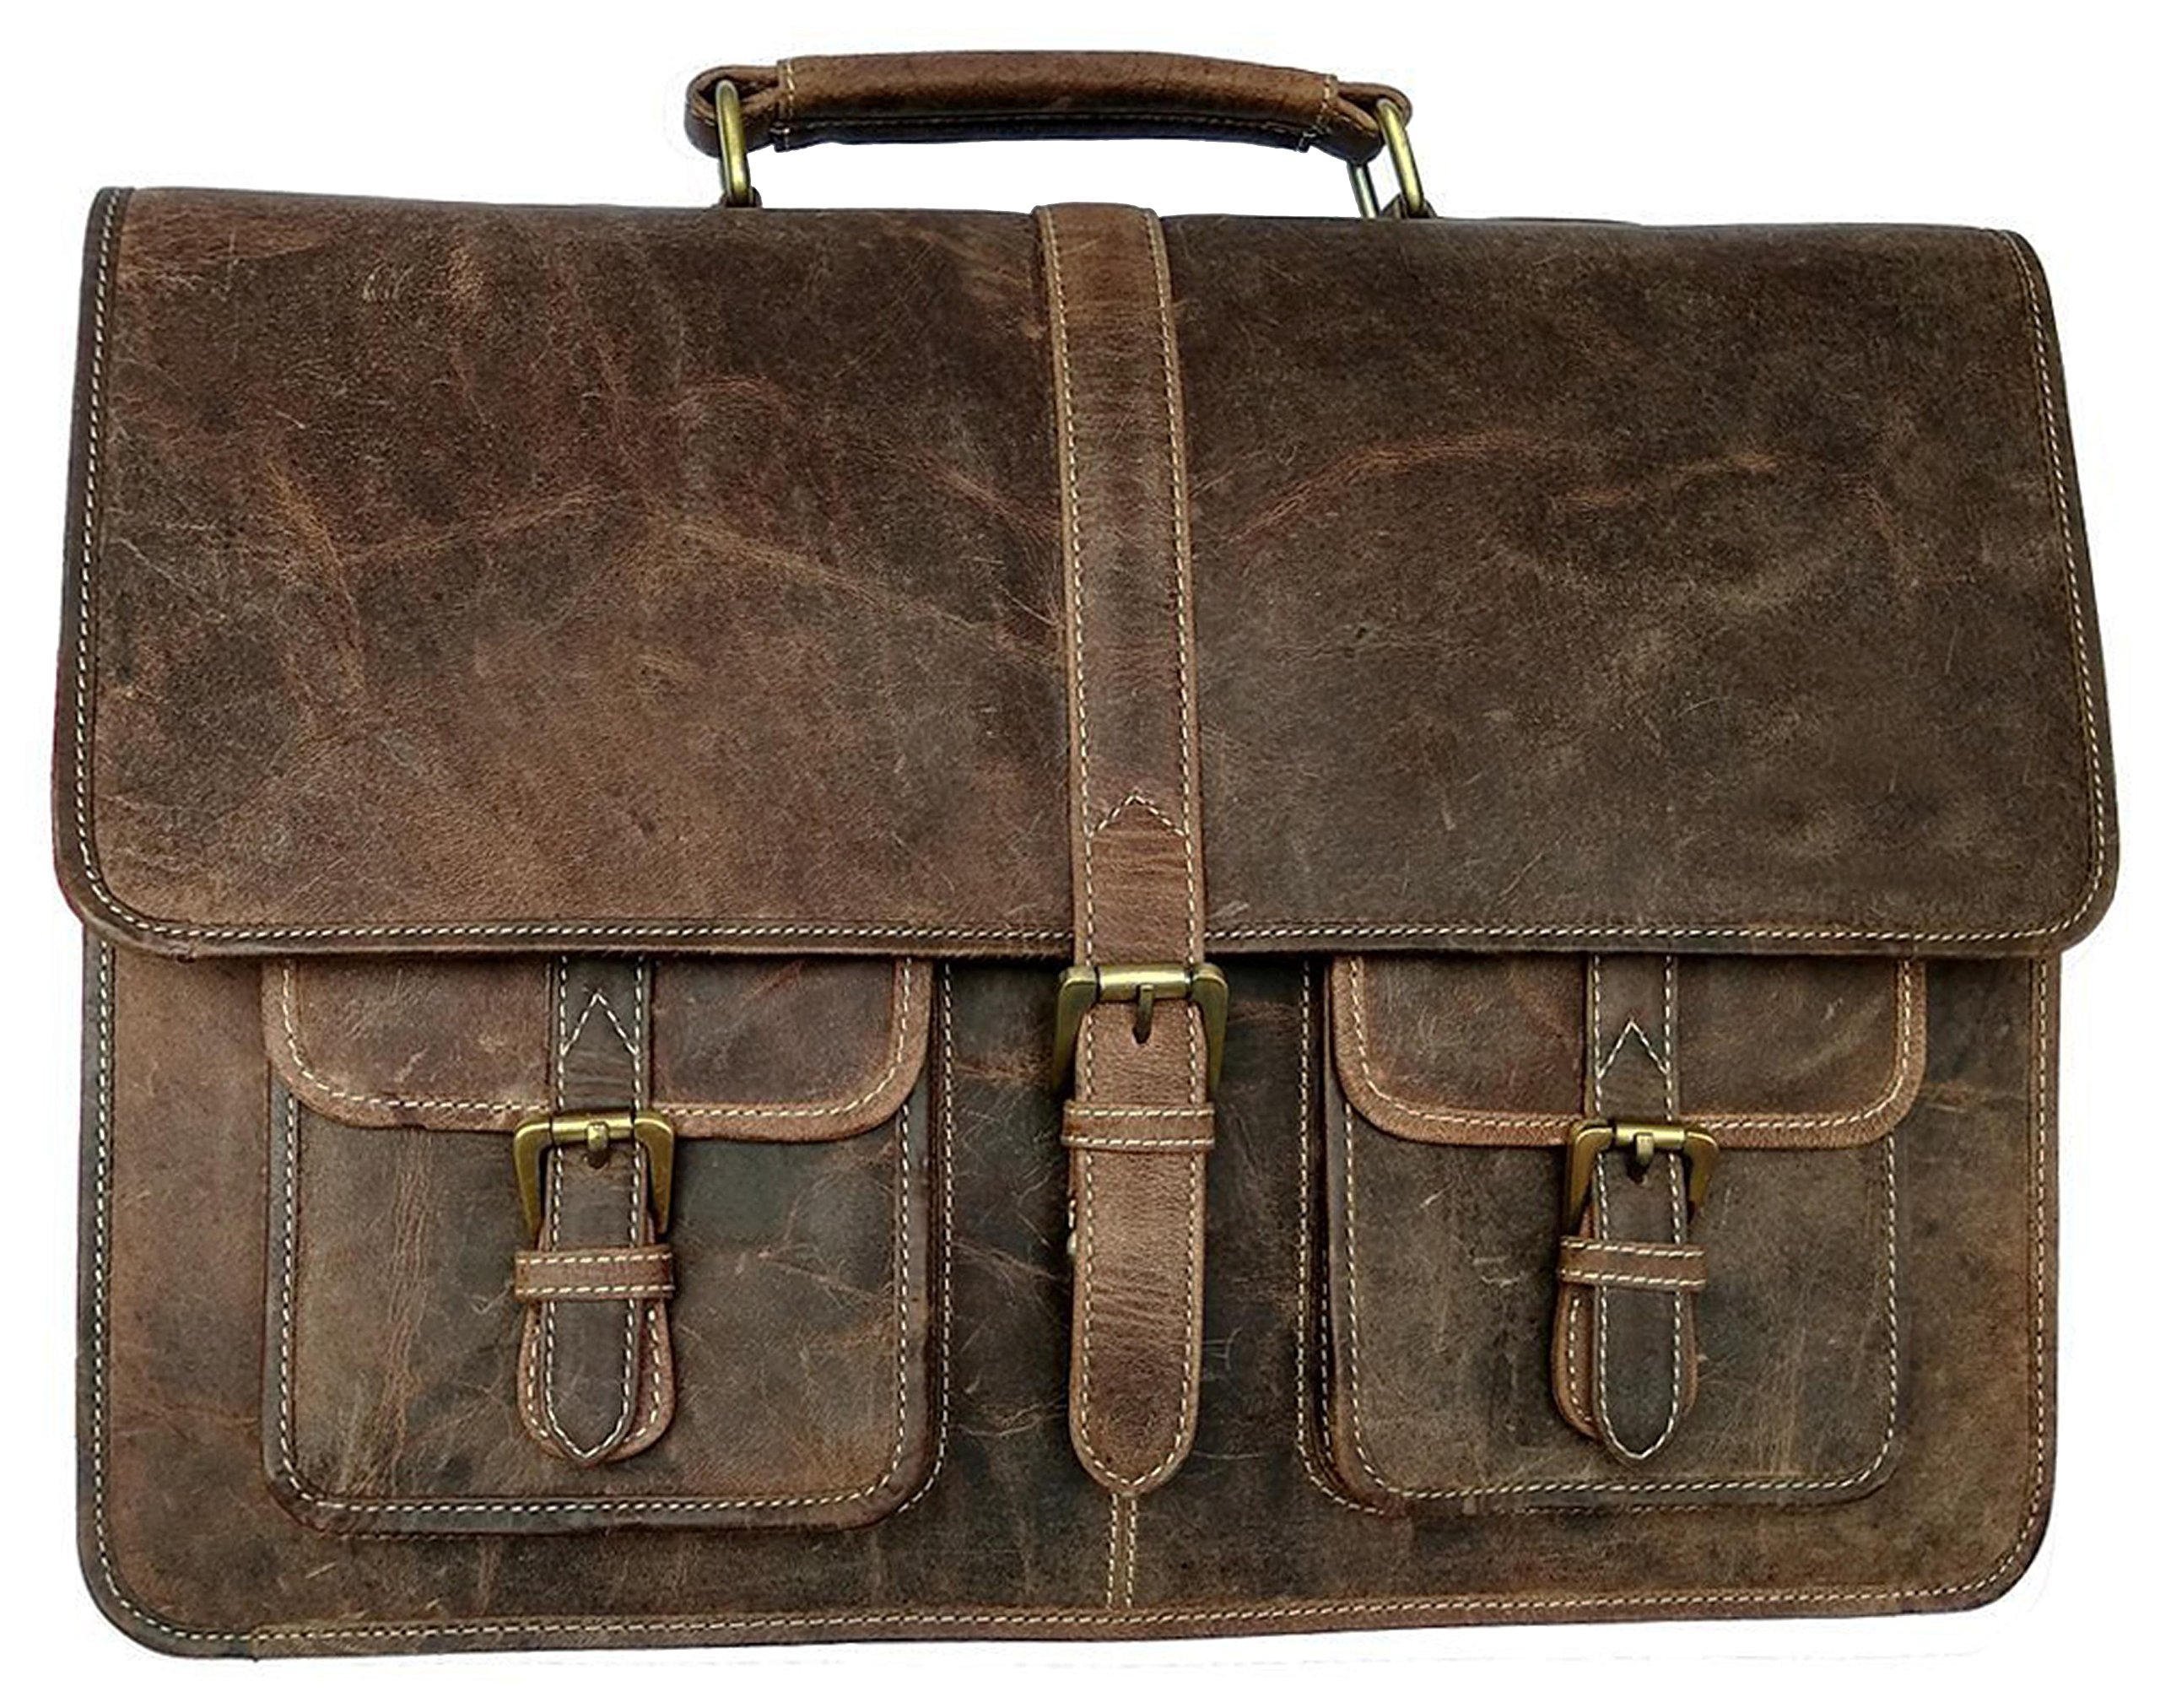 Kk's 16 Inch Leather Laptop Messenger Briefcase Bags For Men And Women